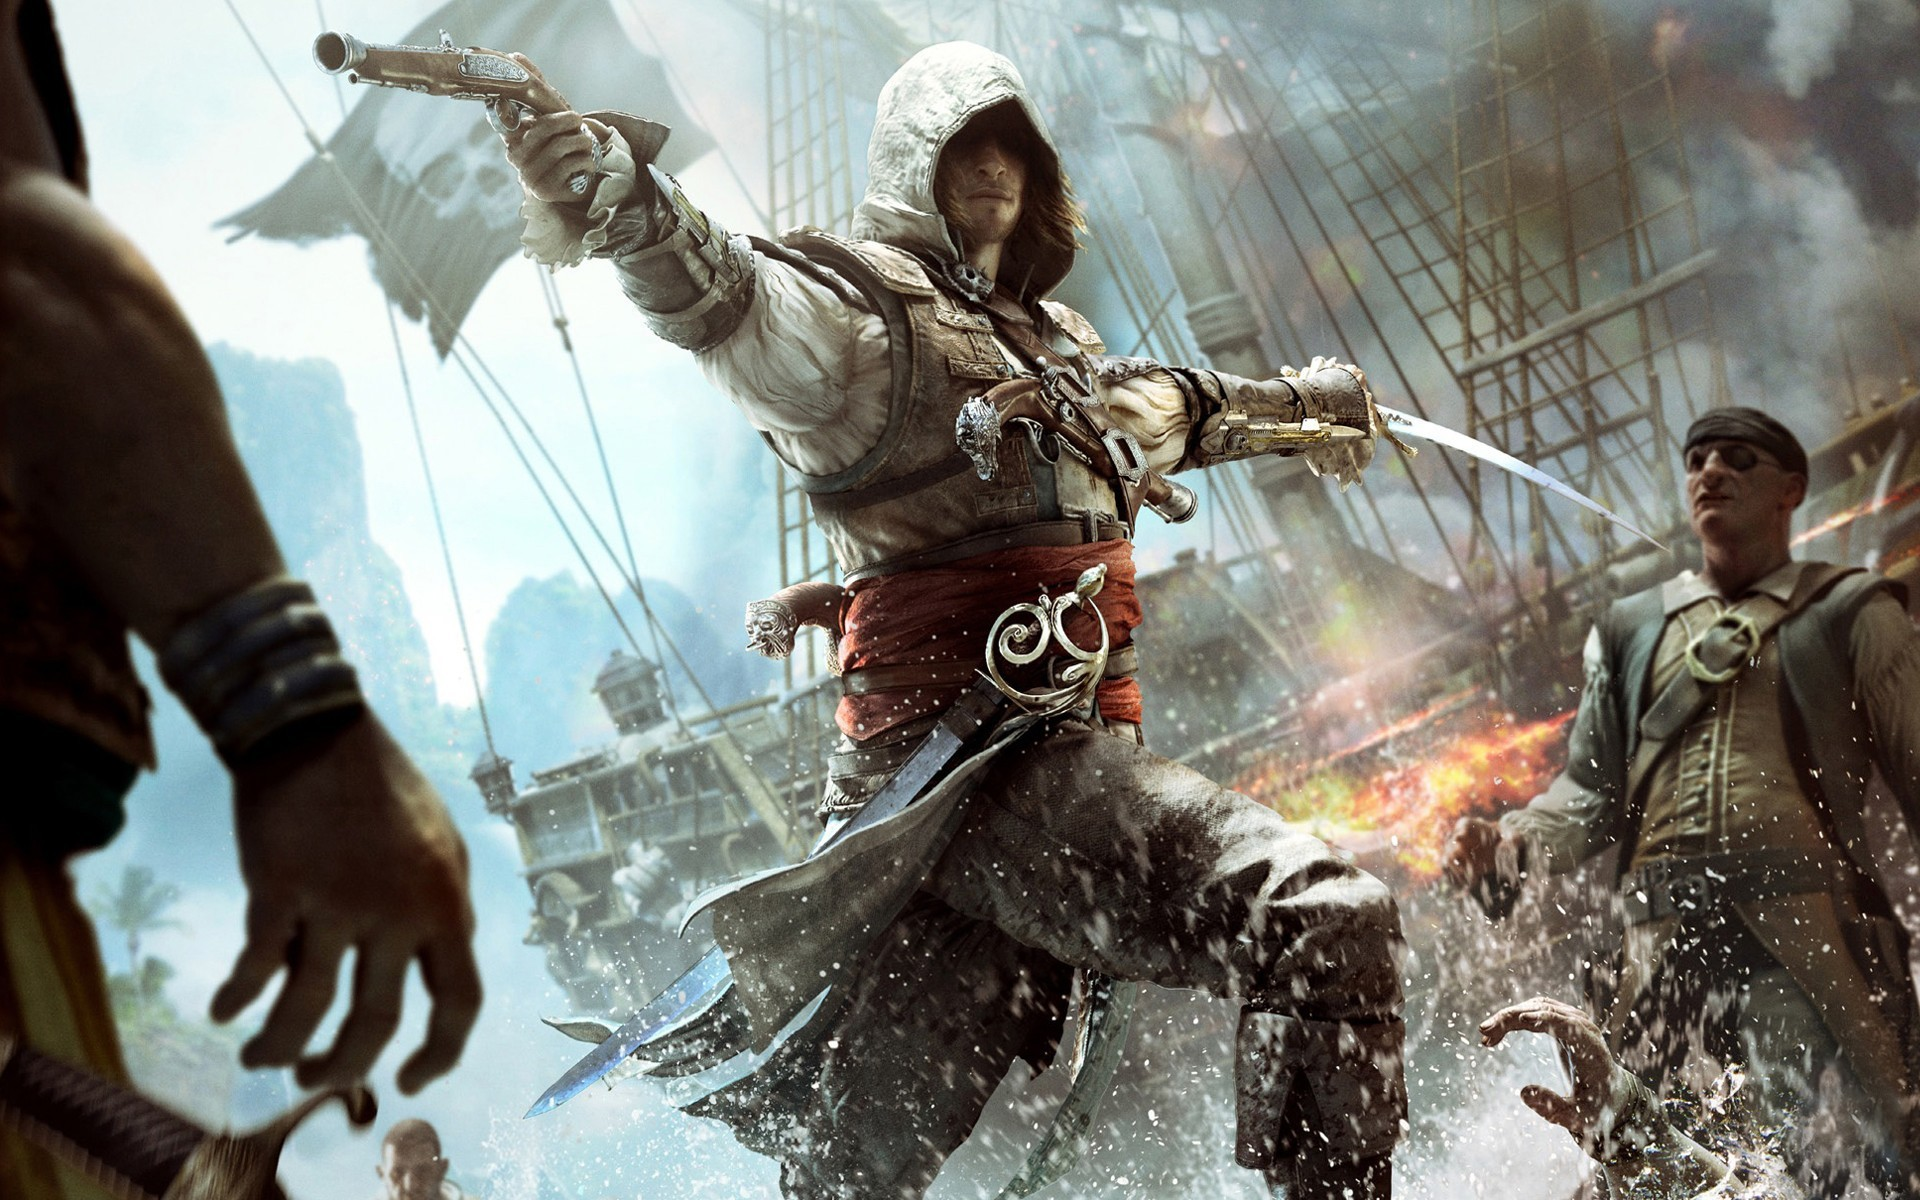 74 Assassins Creed Rogue Wallpaper 1080p Images, Photos, Reviews